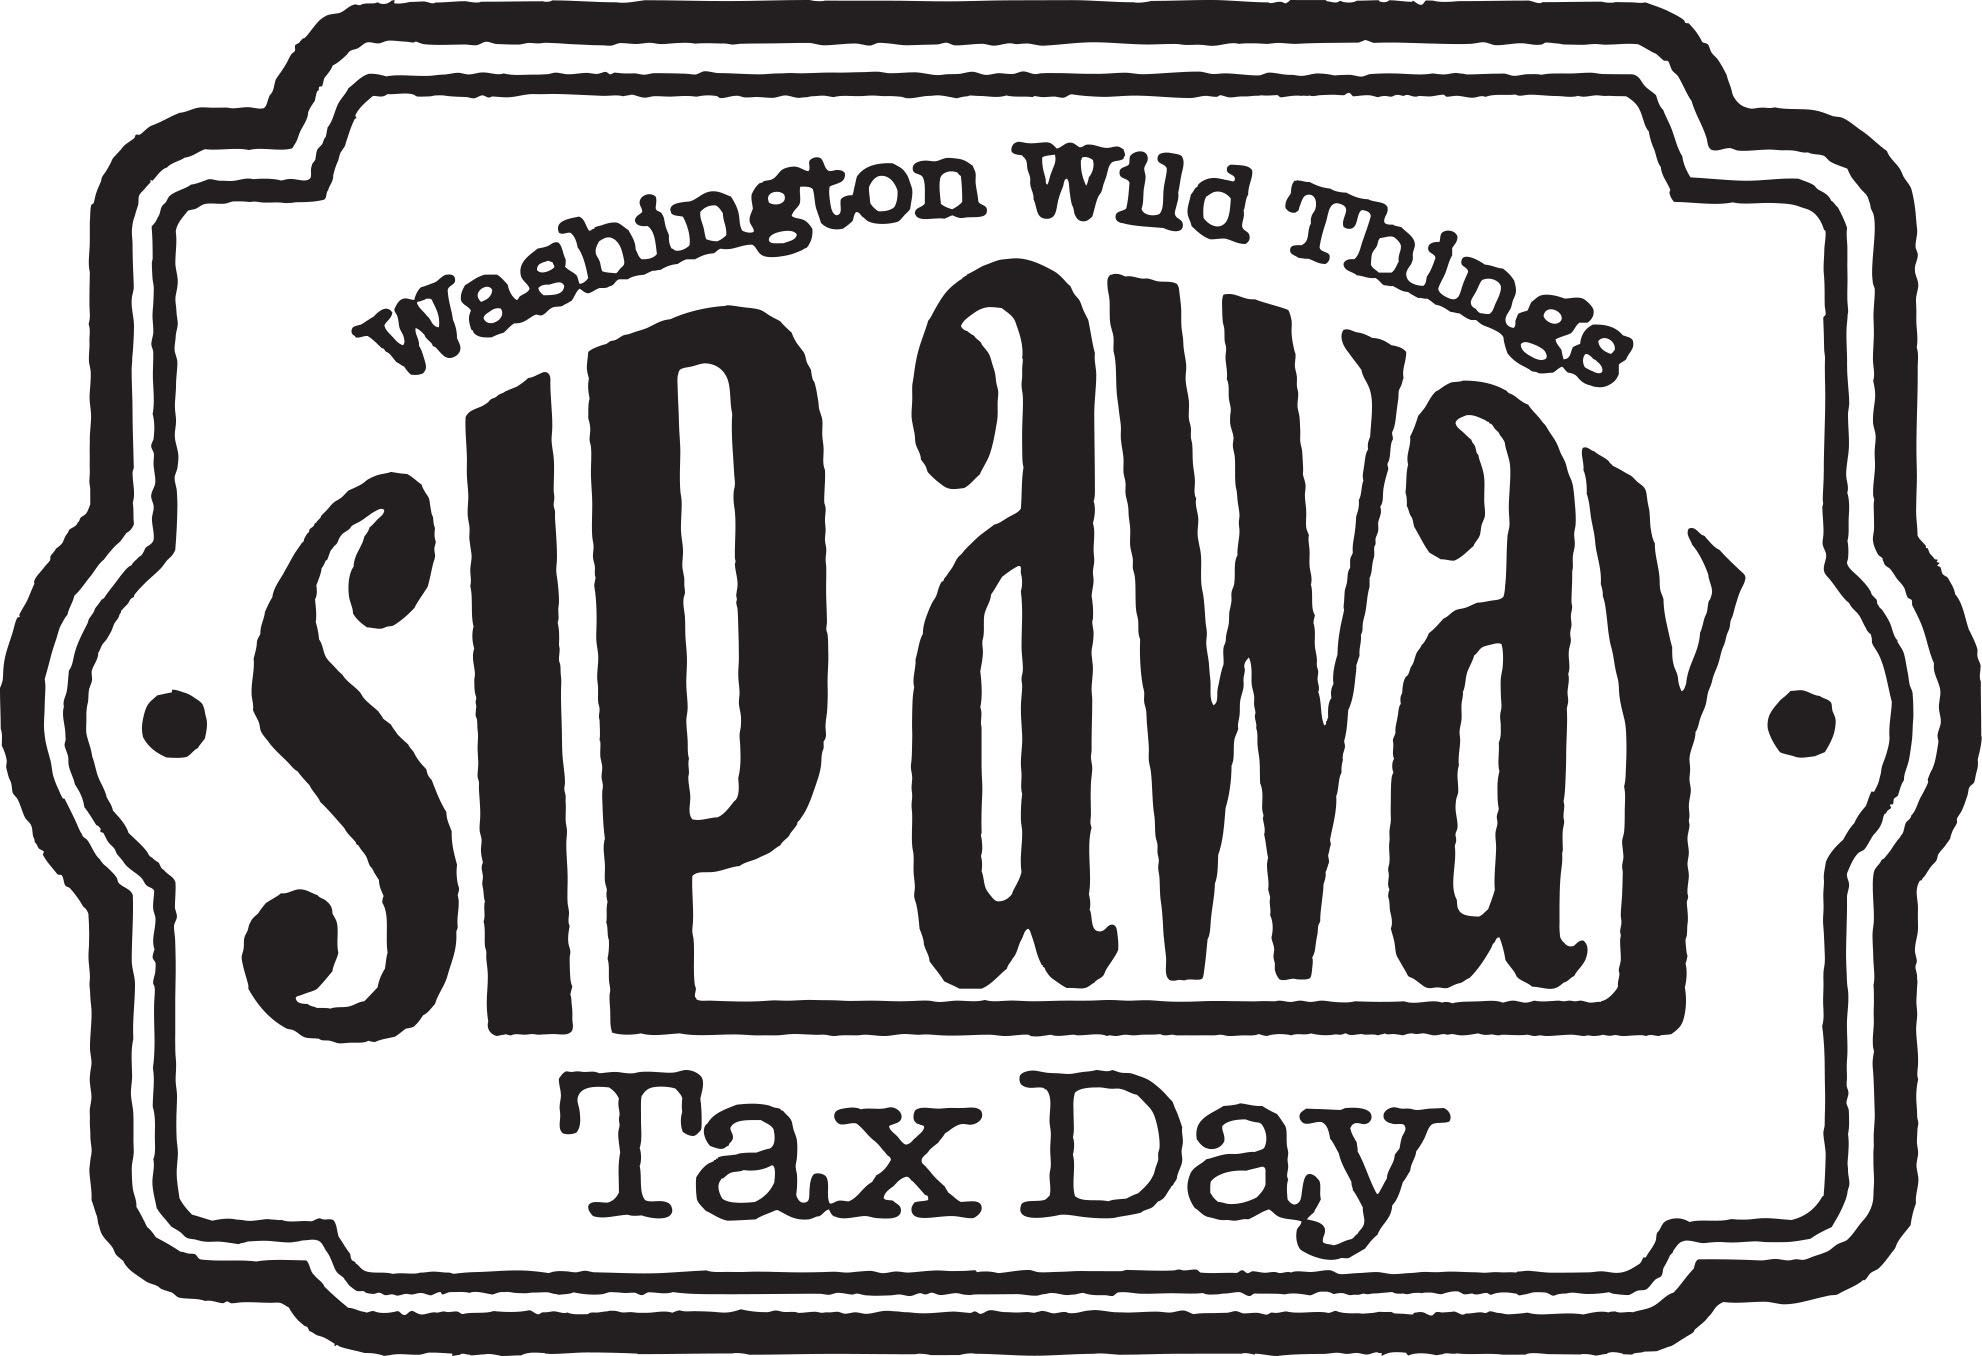 sip away tax day logo Logo for the Washington (PA) Wild Things Sip Away Tax Day booze fest.